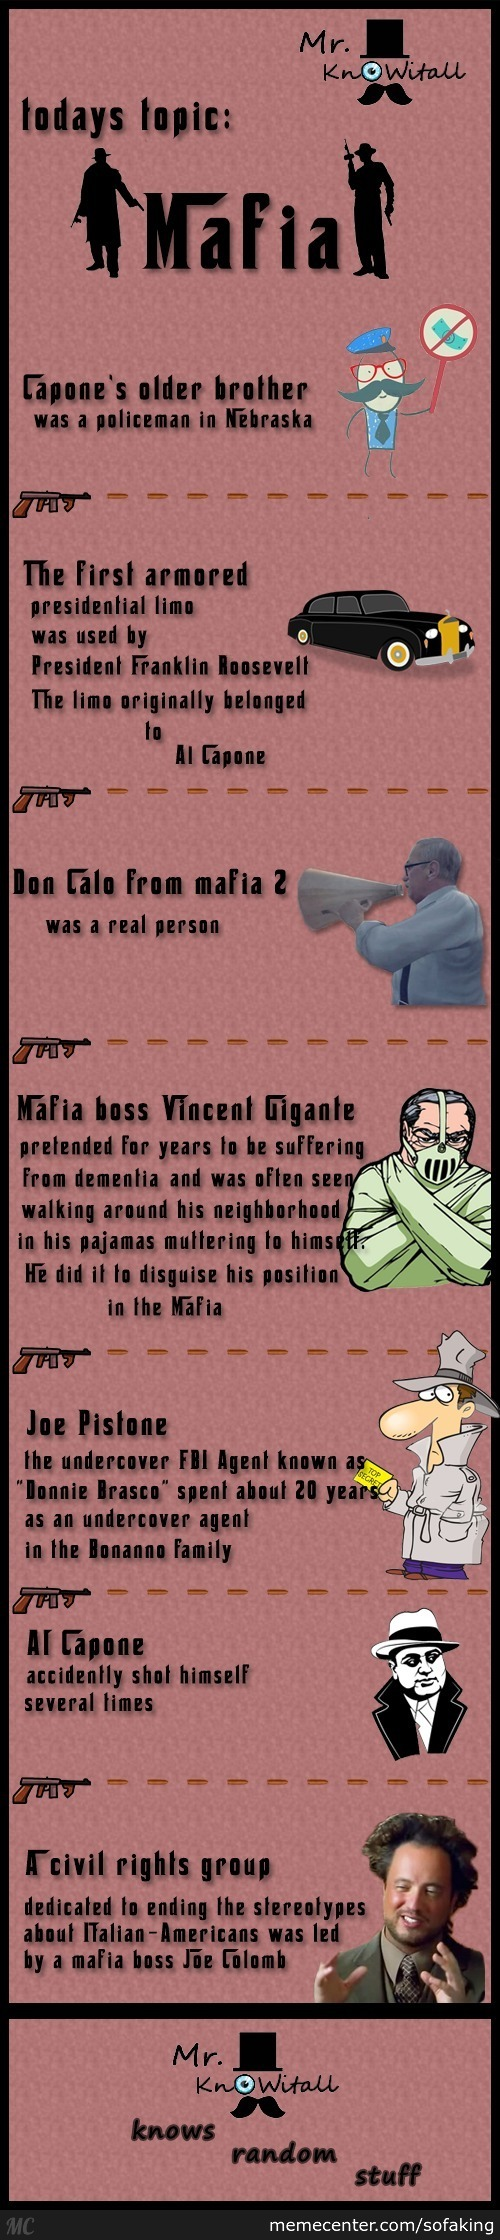 Mr Knowitall On Mafia